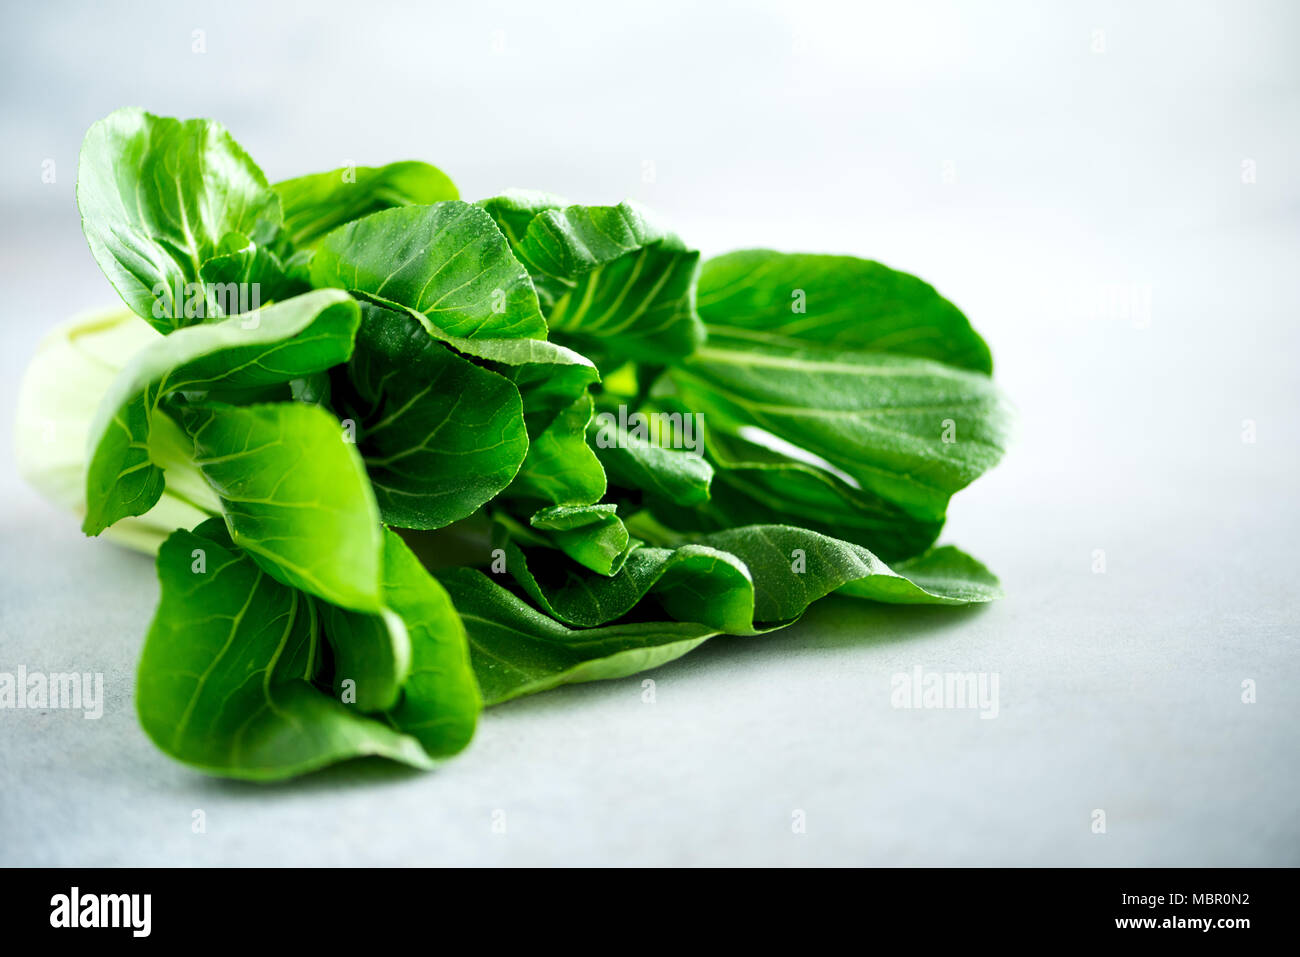 Green organic bok choy chinese cabbage on grey concrete background. Copy space, top view, flat lay - Stock Image